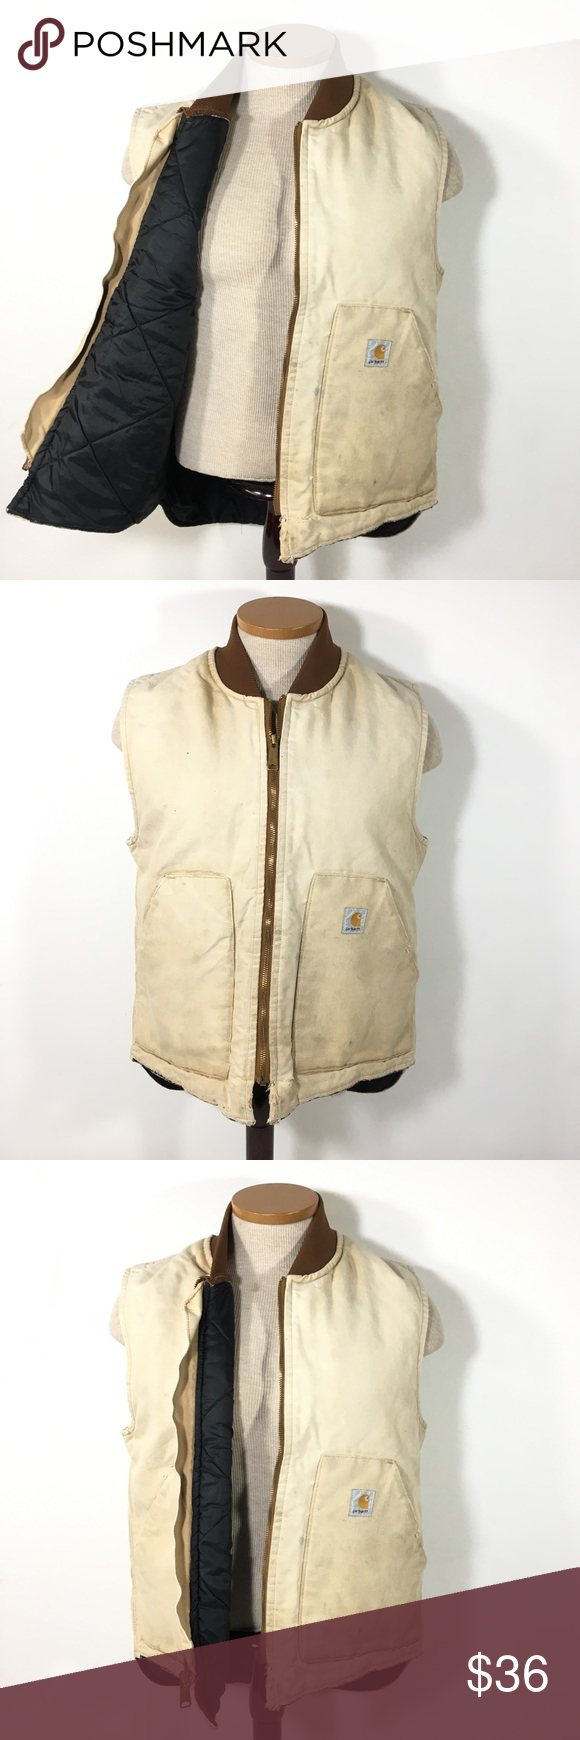 Carhartt Arctic Quilted Cotton Canvas Vest Faded M Carhartt Mens